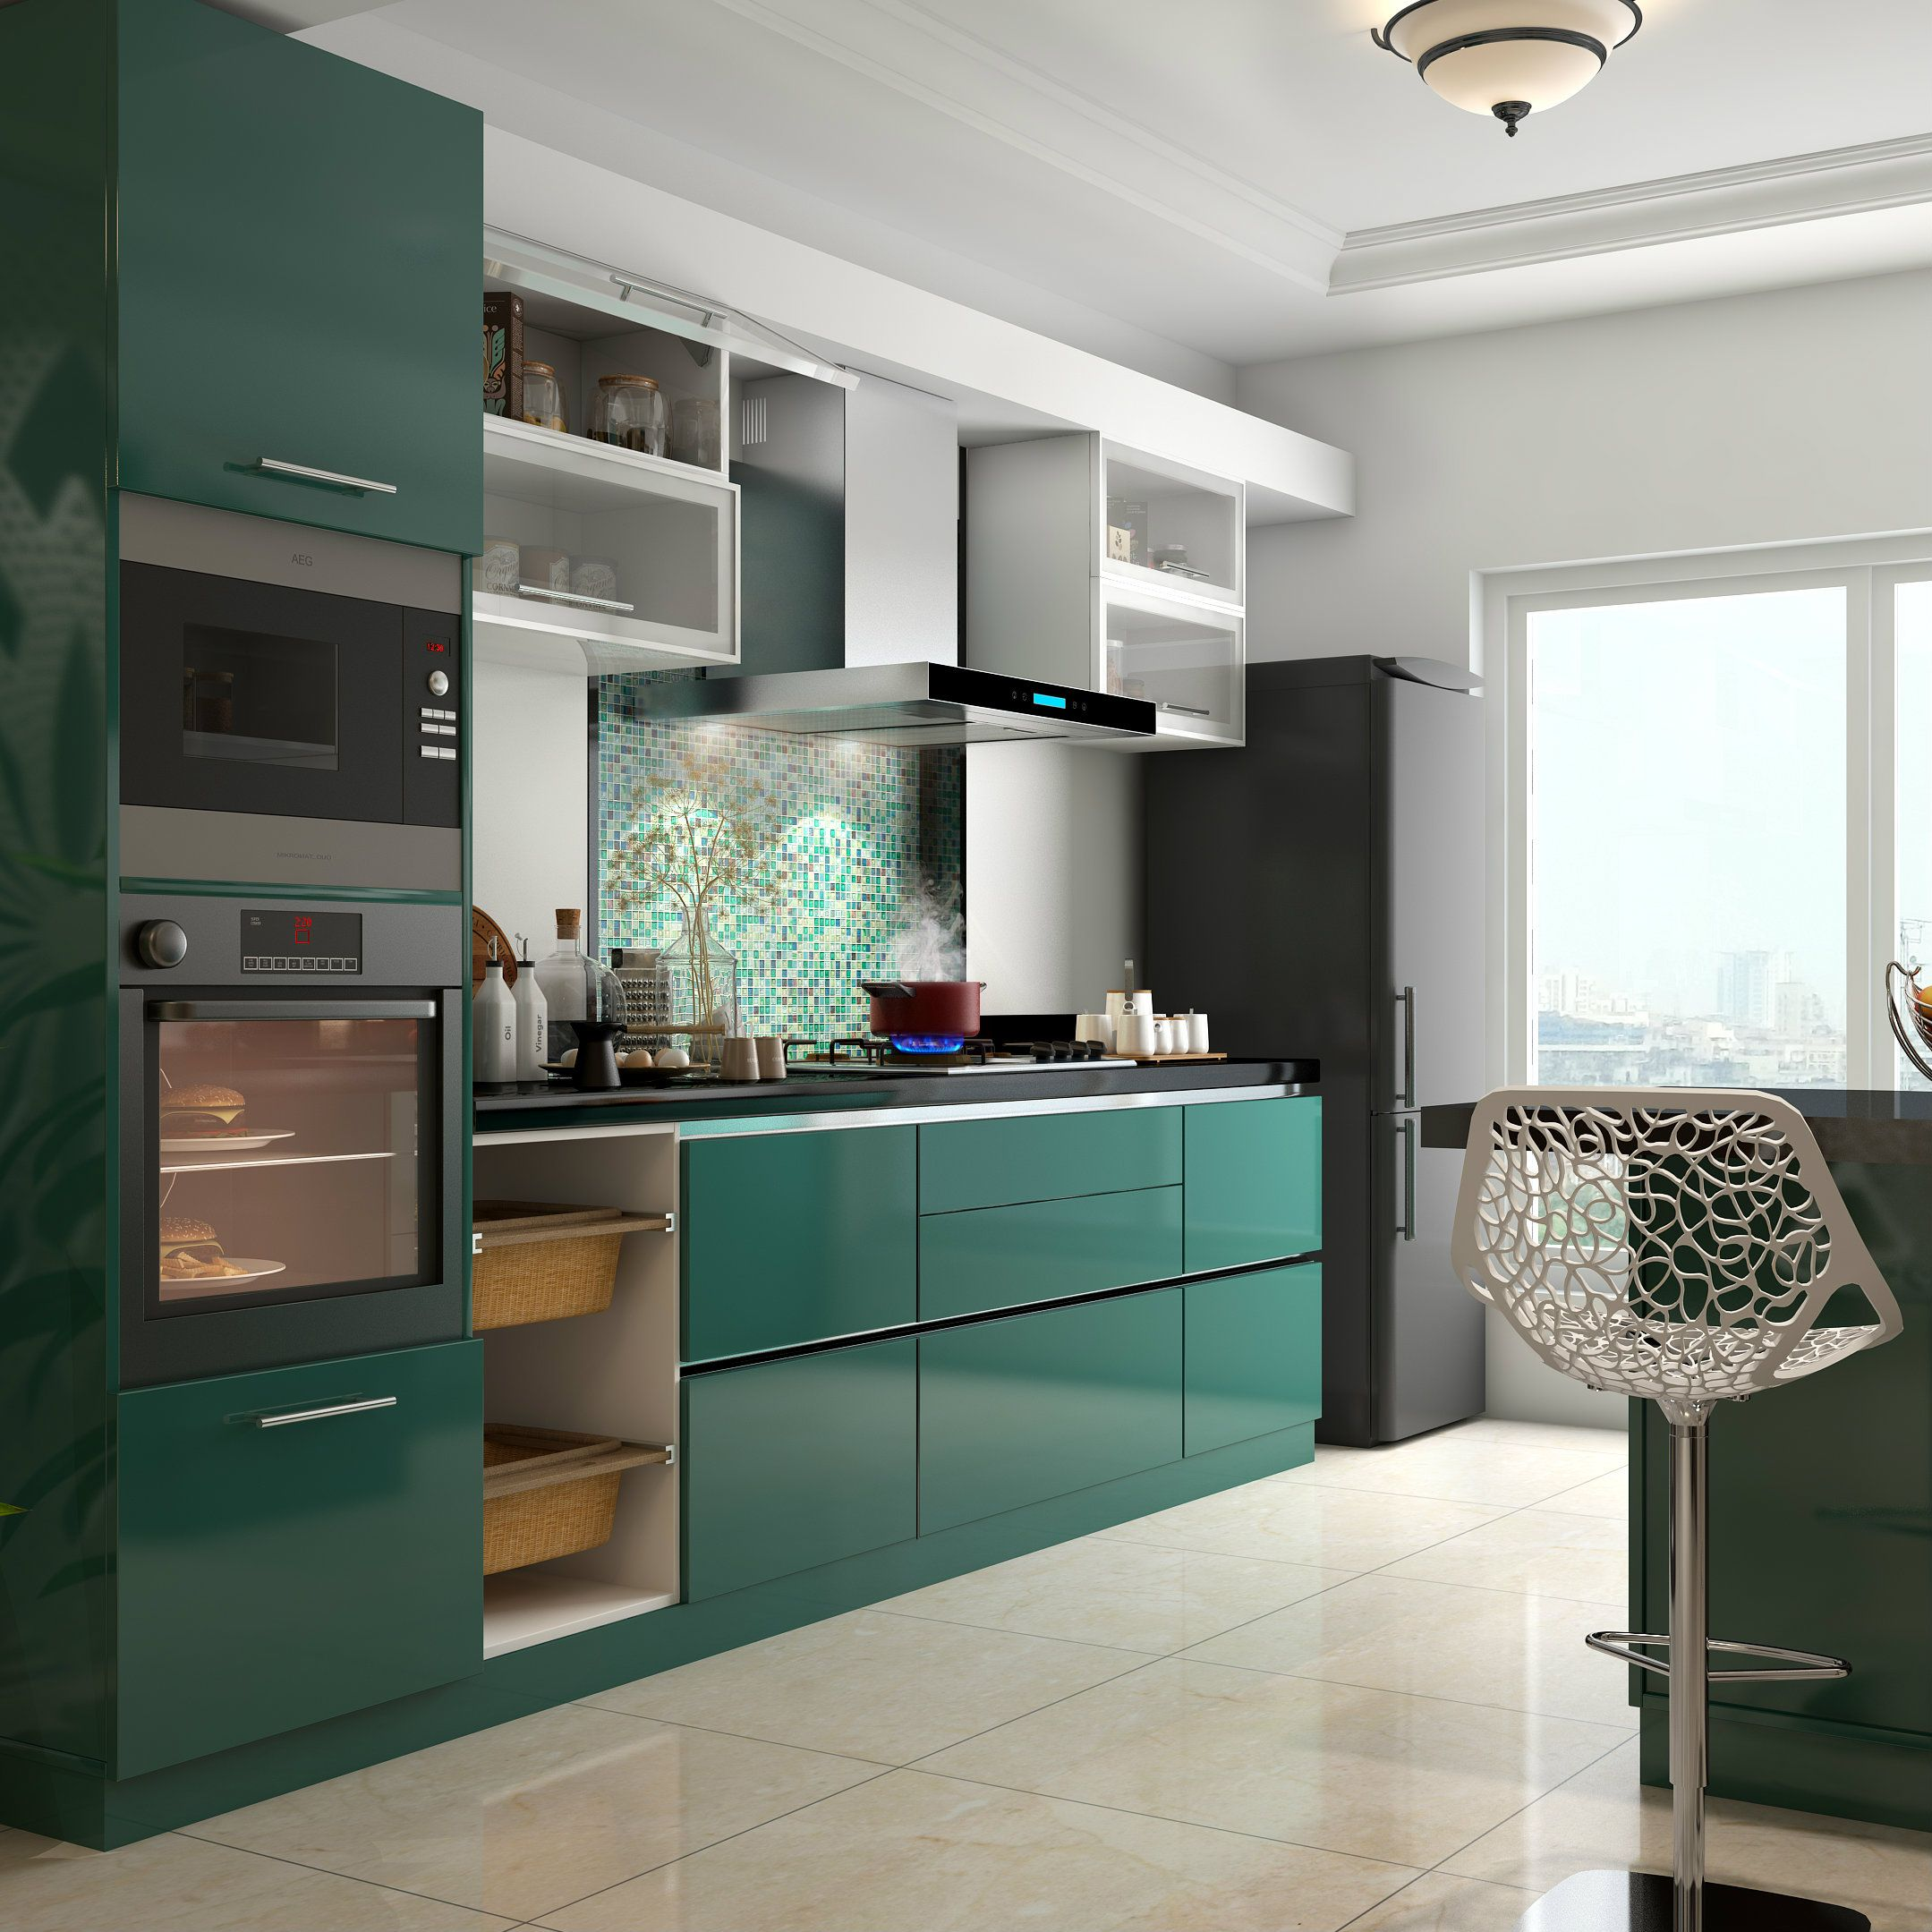 Glossy green cabinets infuse vitality to this kitchen ...